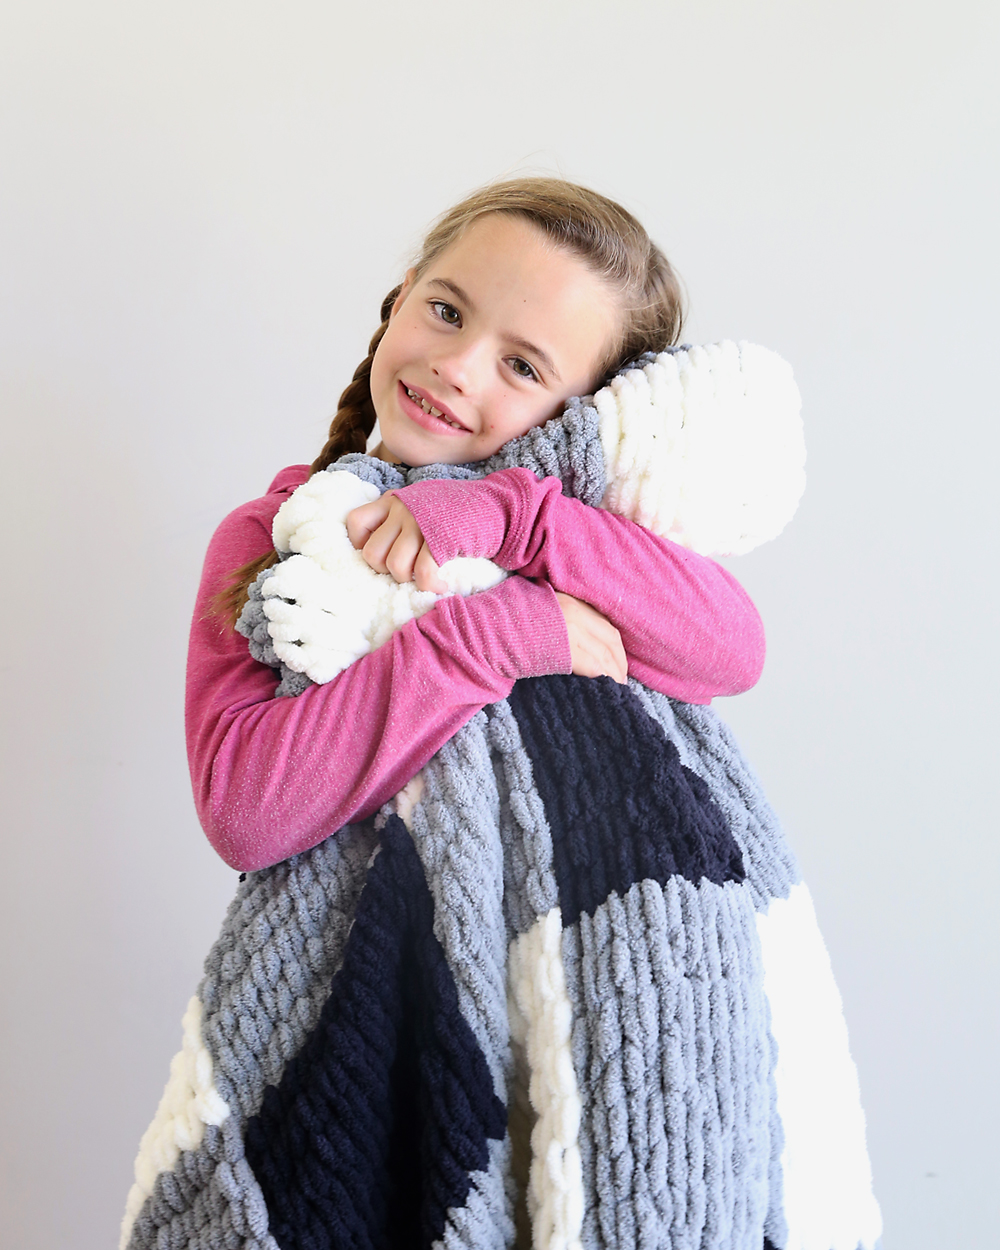 Girl snuggling with a finger knit blanket made from loop yarn